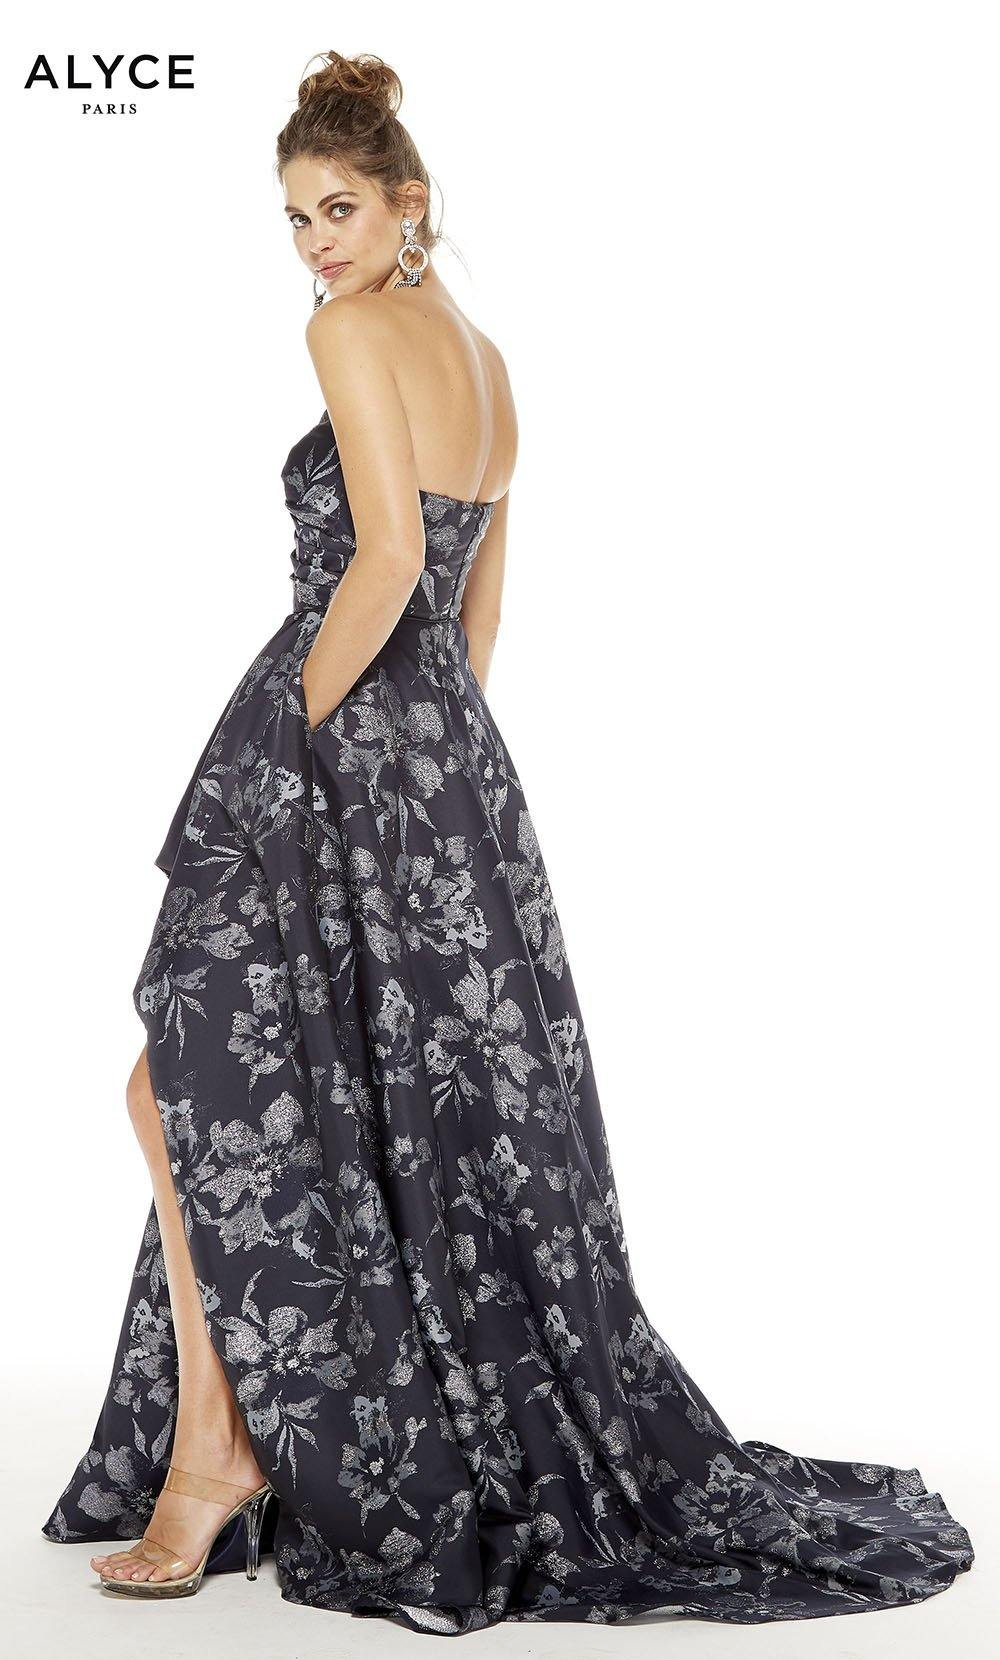 Midnight-Silver strapless floral gown with a high slit and pockets